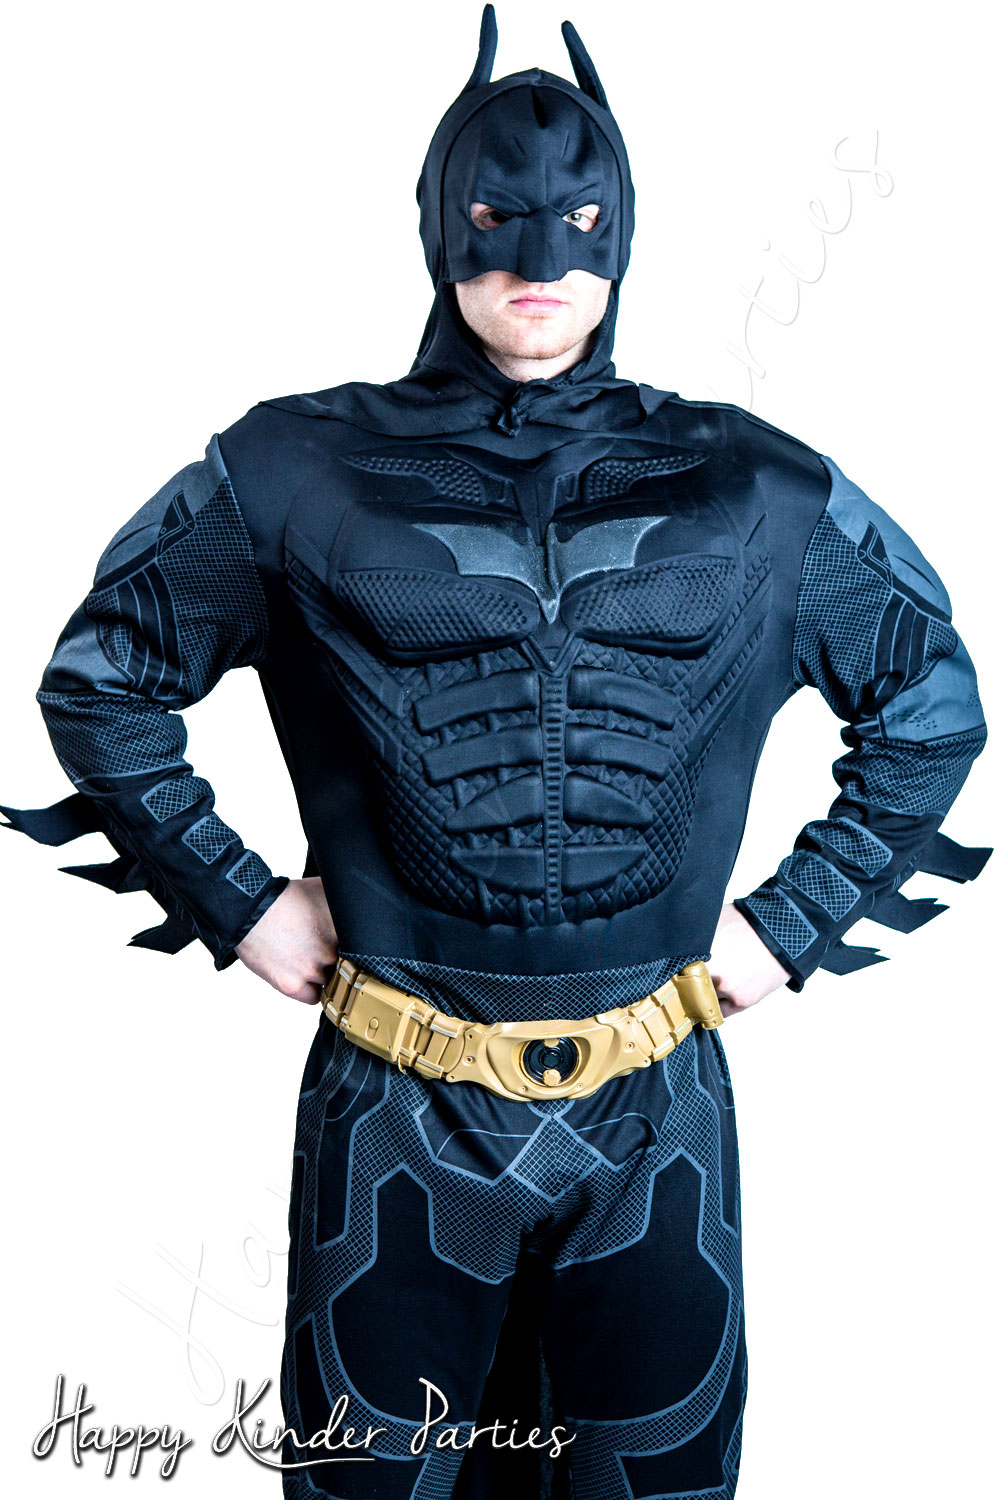 Batman Childrens Party Entertainer Costume